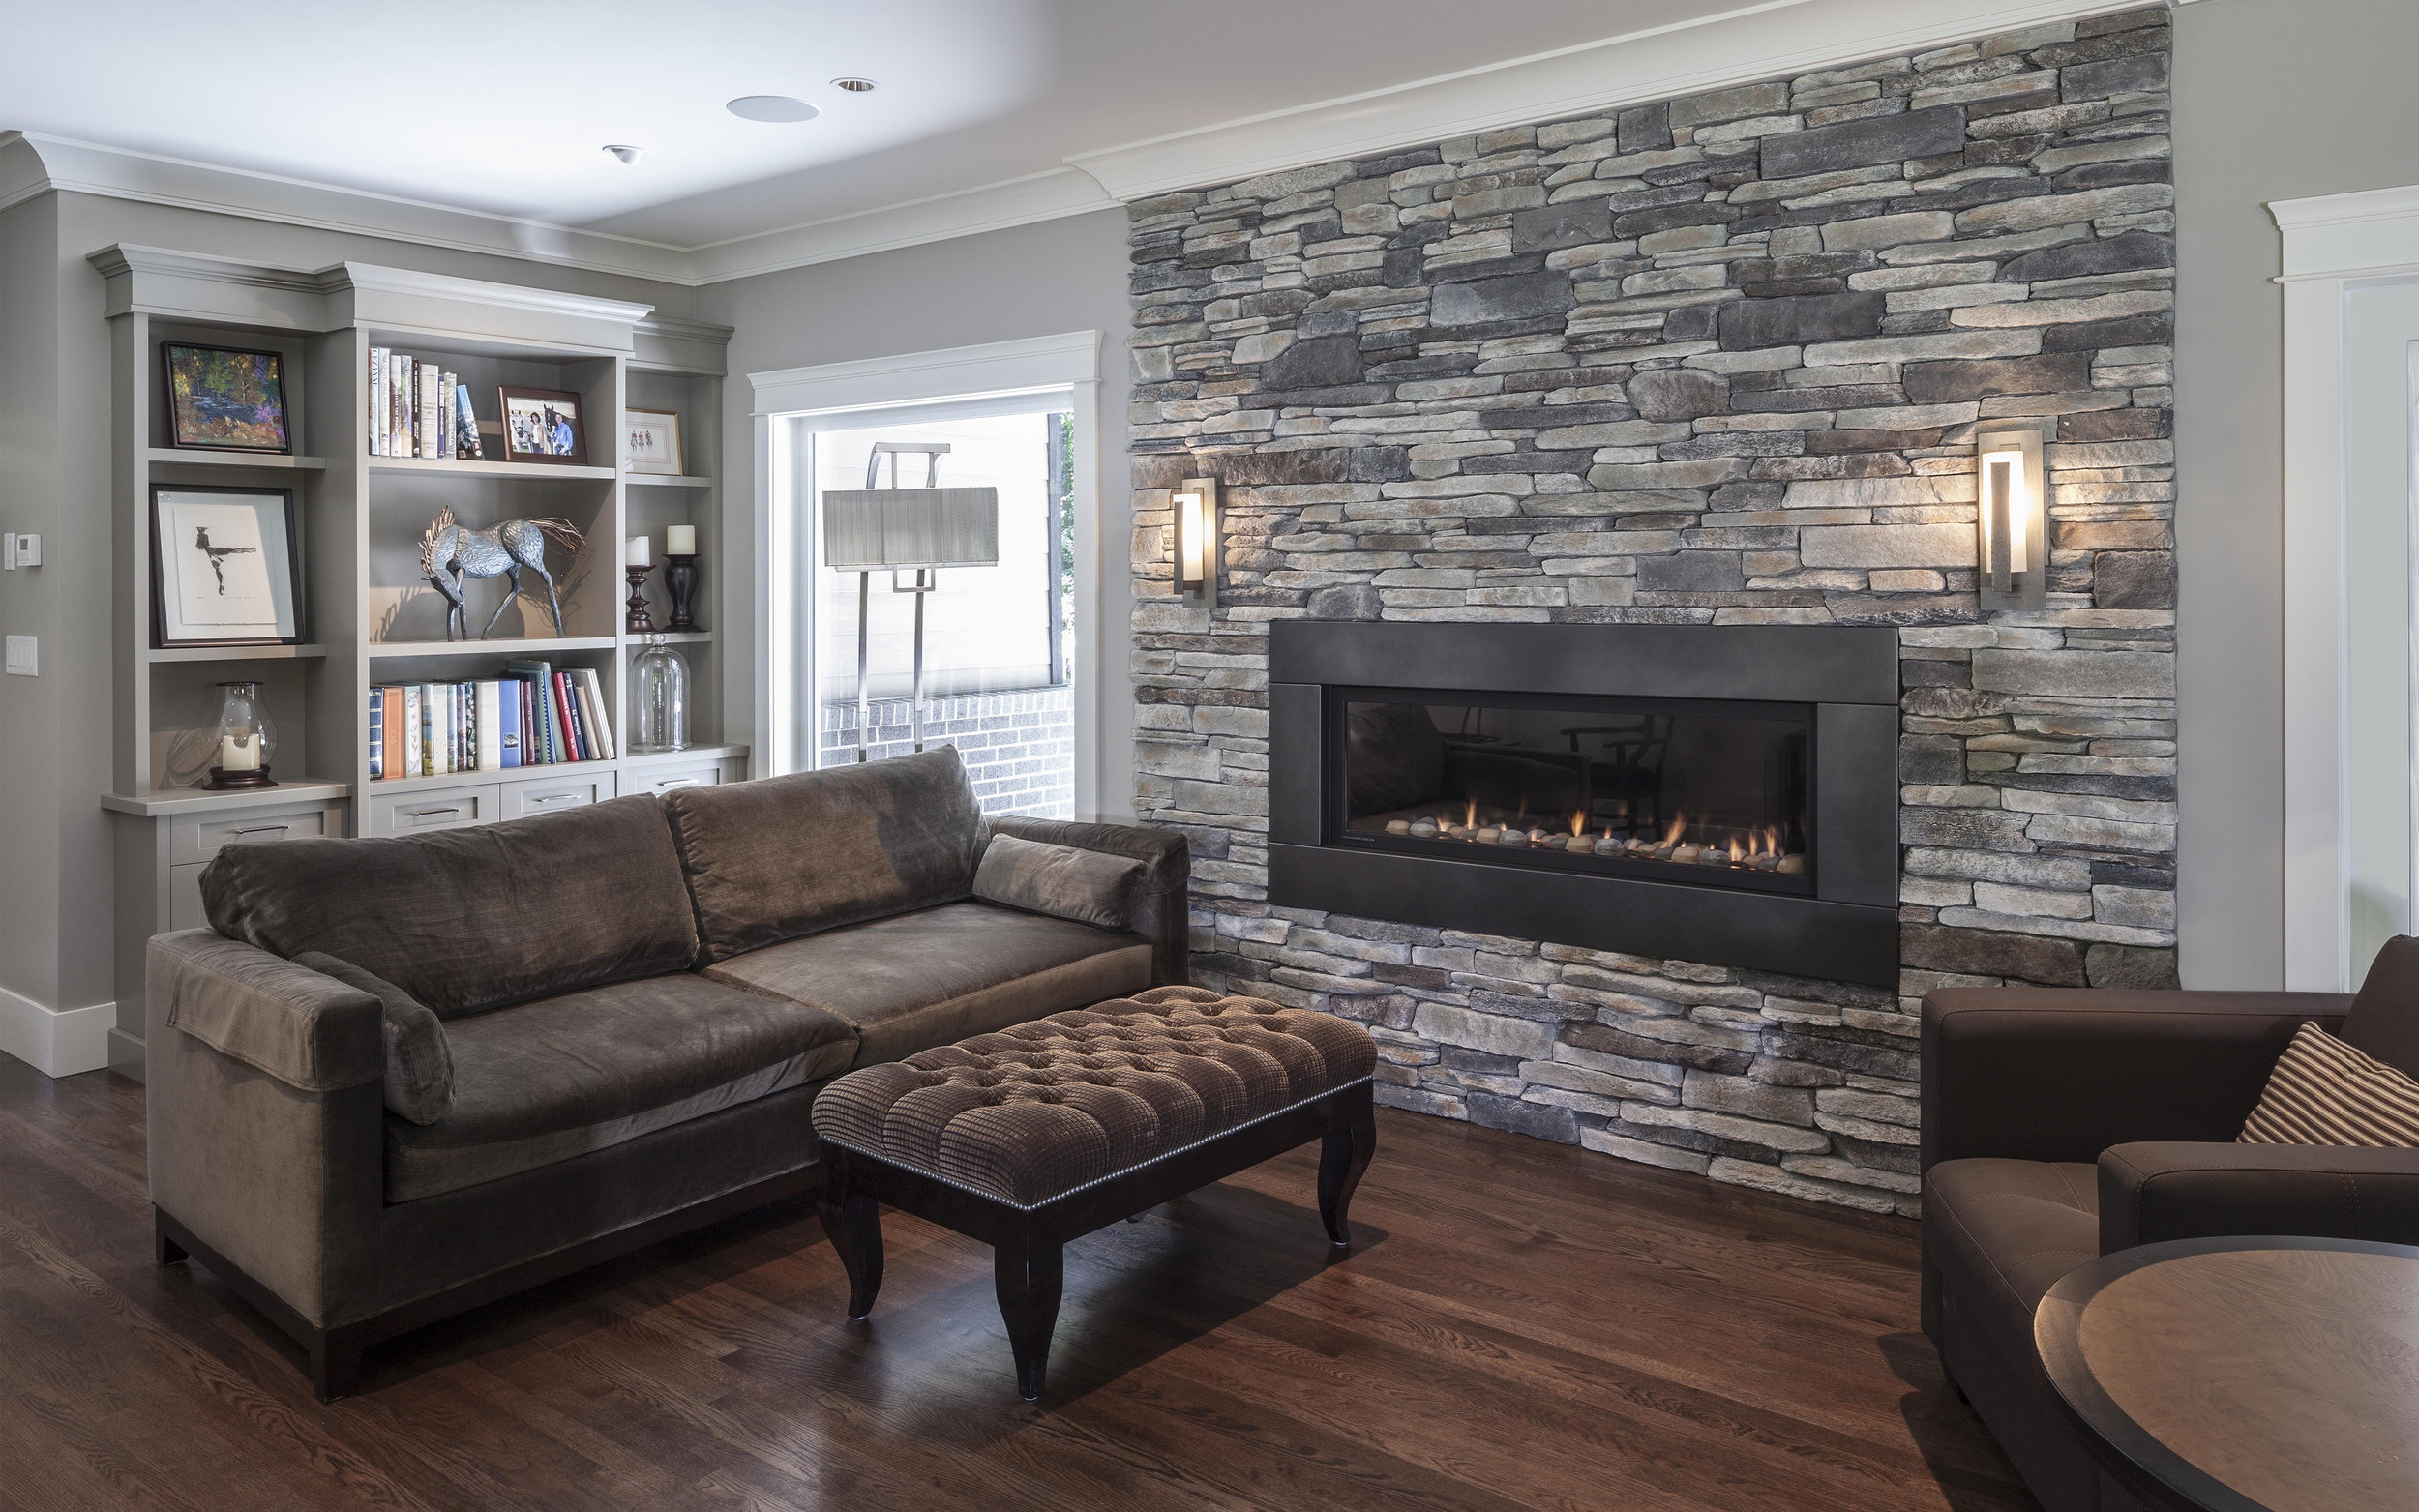 Cultured Stone® by Boral® - Cultured Stone® by Boral® has beautiful stone veneer options to complete a project of any shape and size.